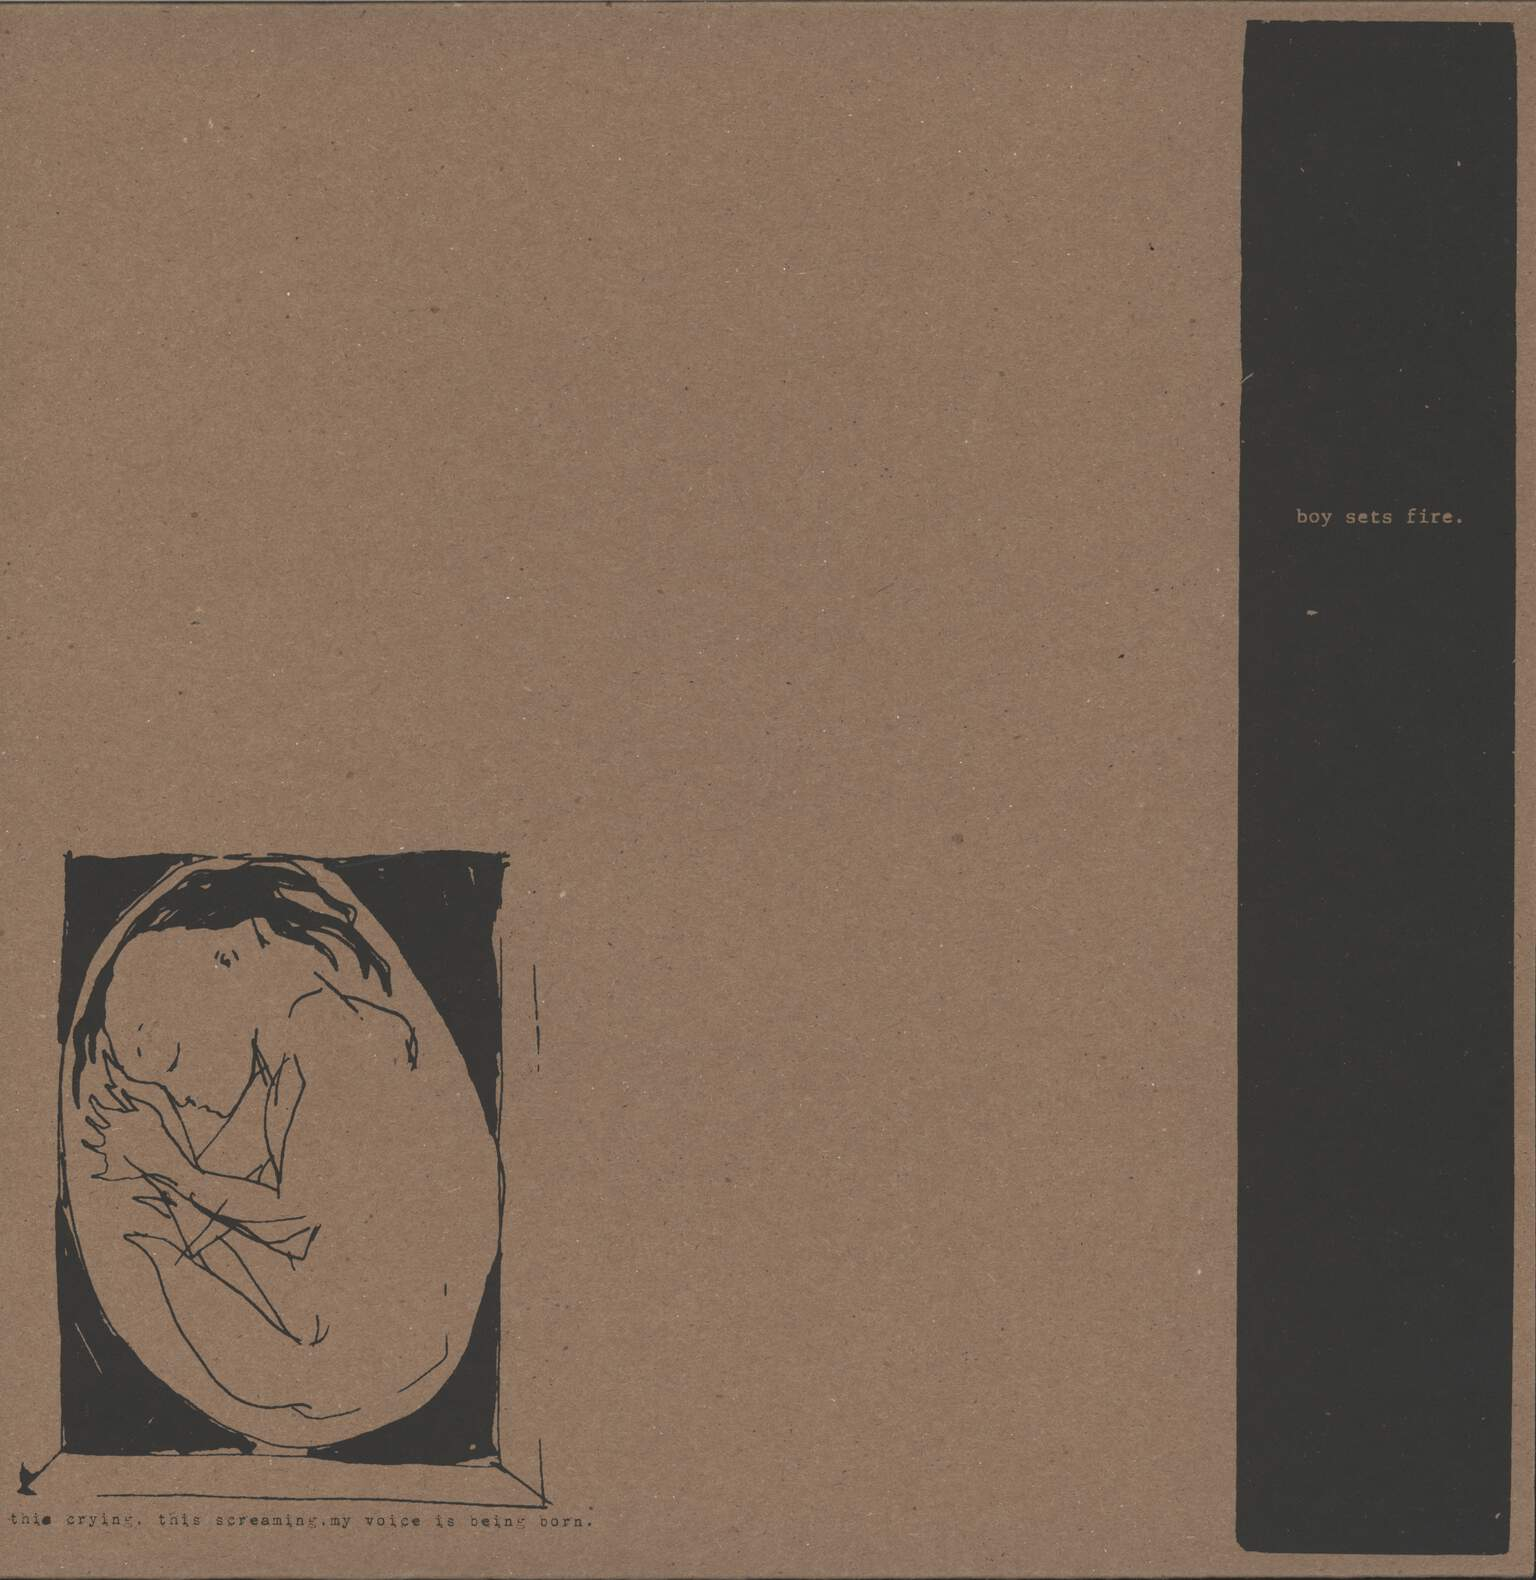 "Boysetsfire: This Crying, This Screaming, My Voice Is Being Born., 12"" Maxi Single (Vinyl)"